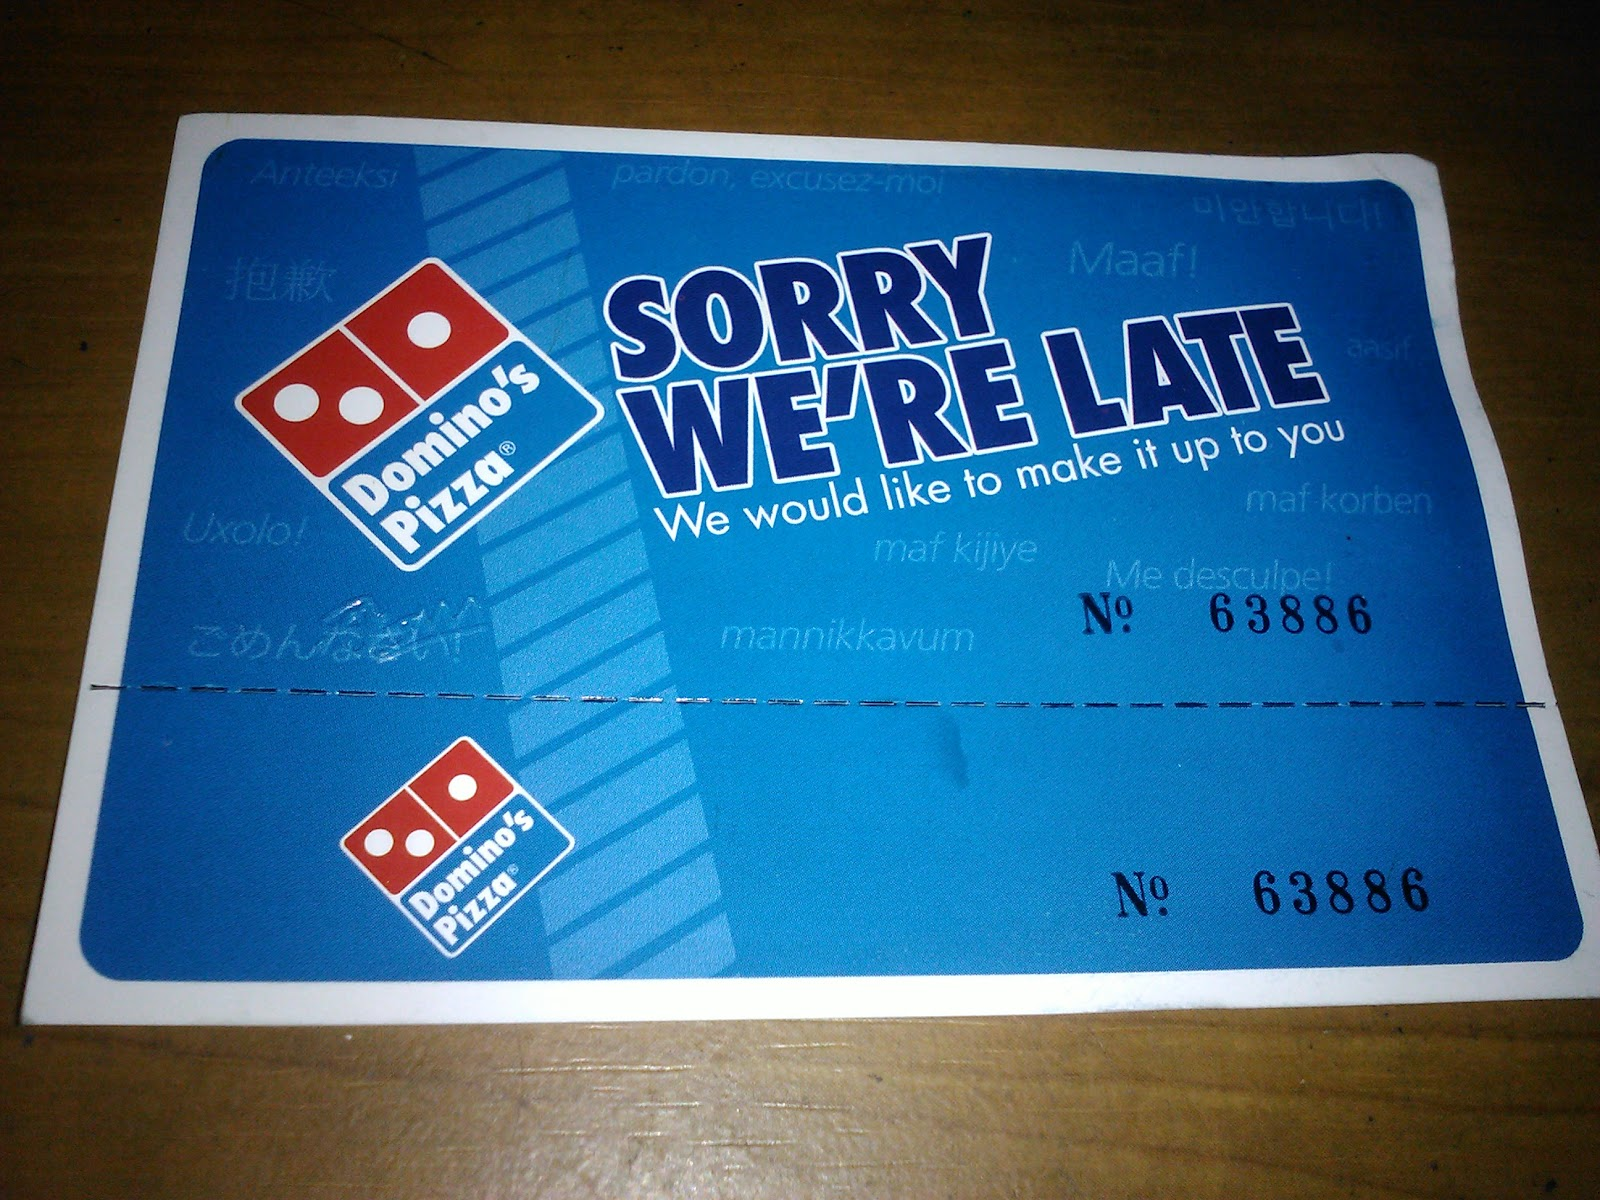 Free delivery coupons for dominos pizza